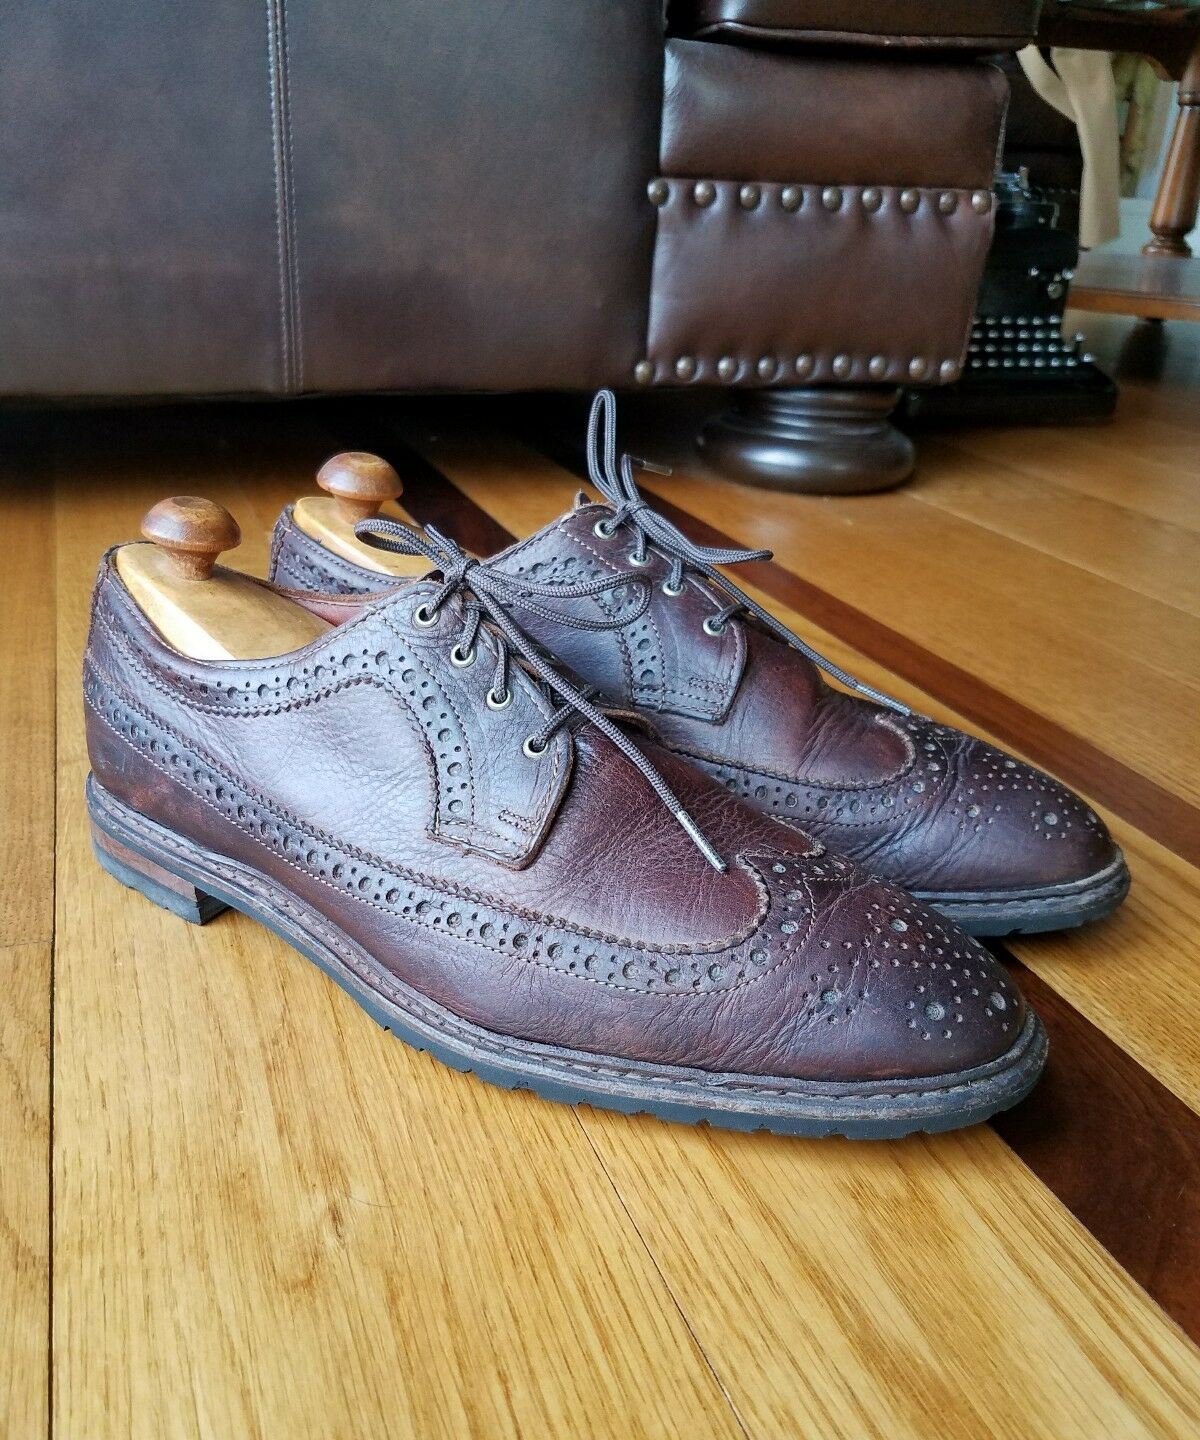 BROOKS BrougeHERS marron CUIR épais Bout D'Aile Robe derbies chaussures 11 D Made in USA